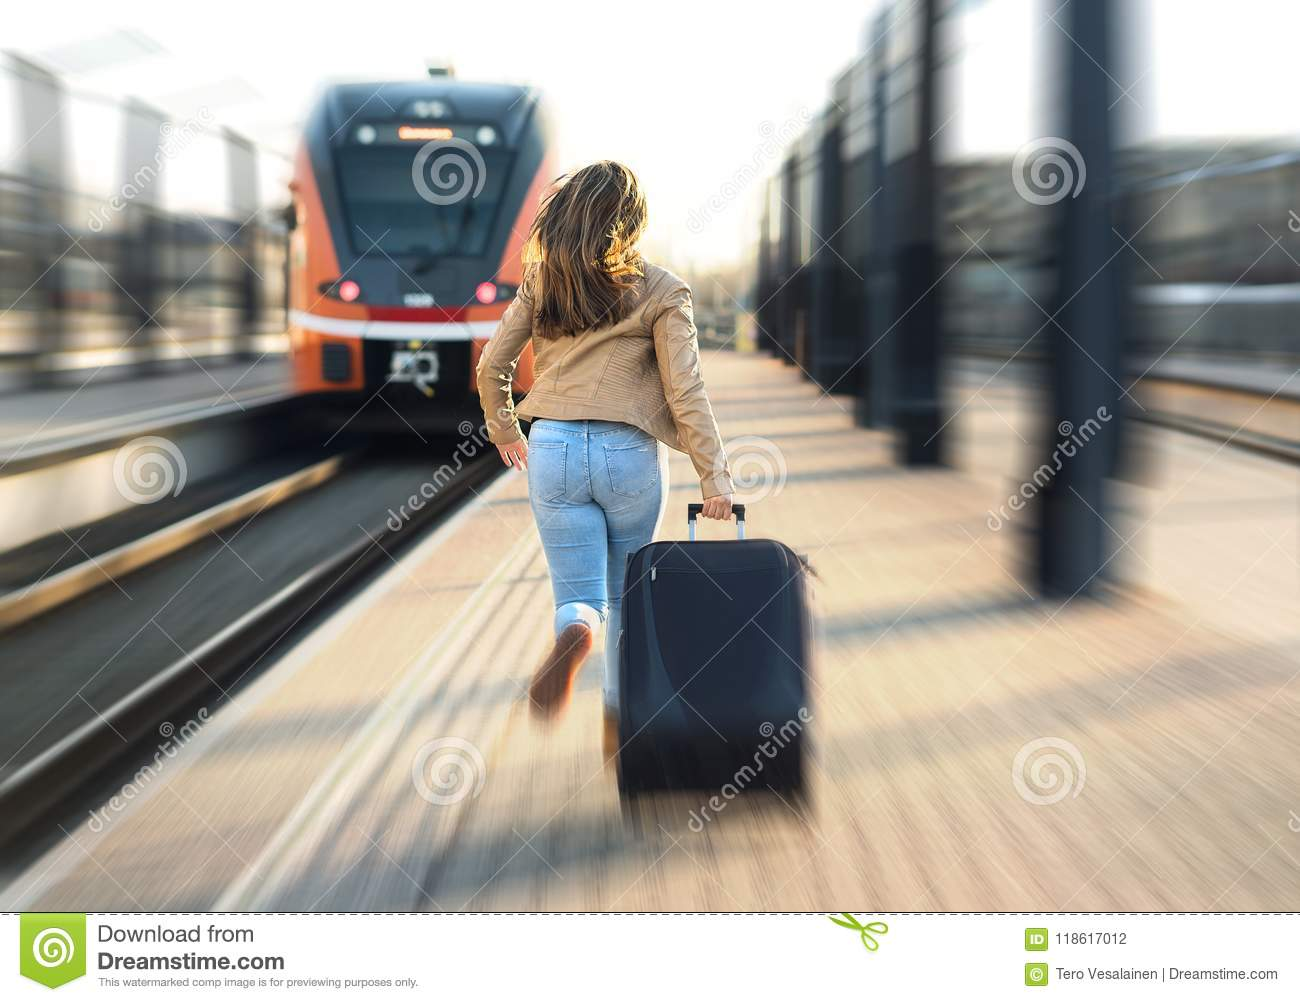 Woman late from train. Tourist running and chasing.